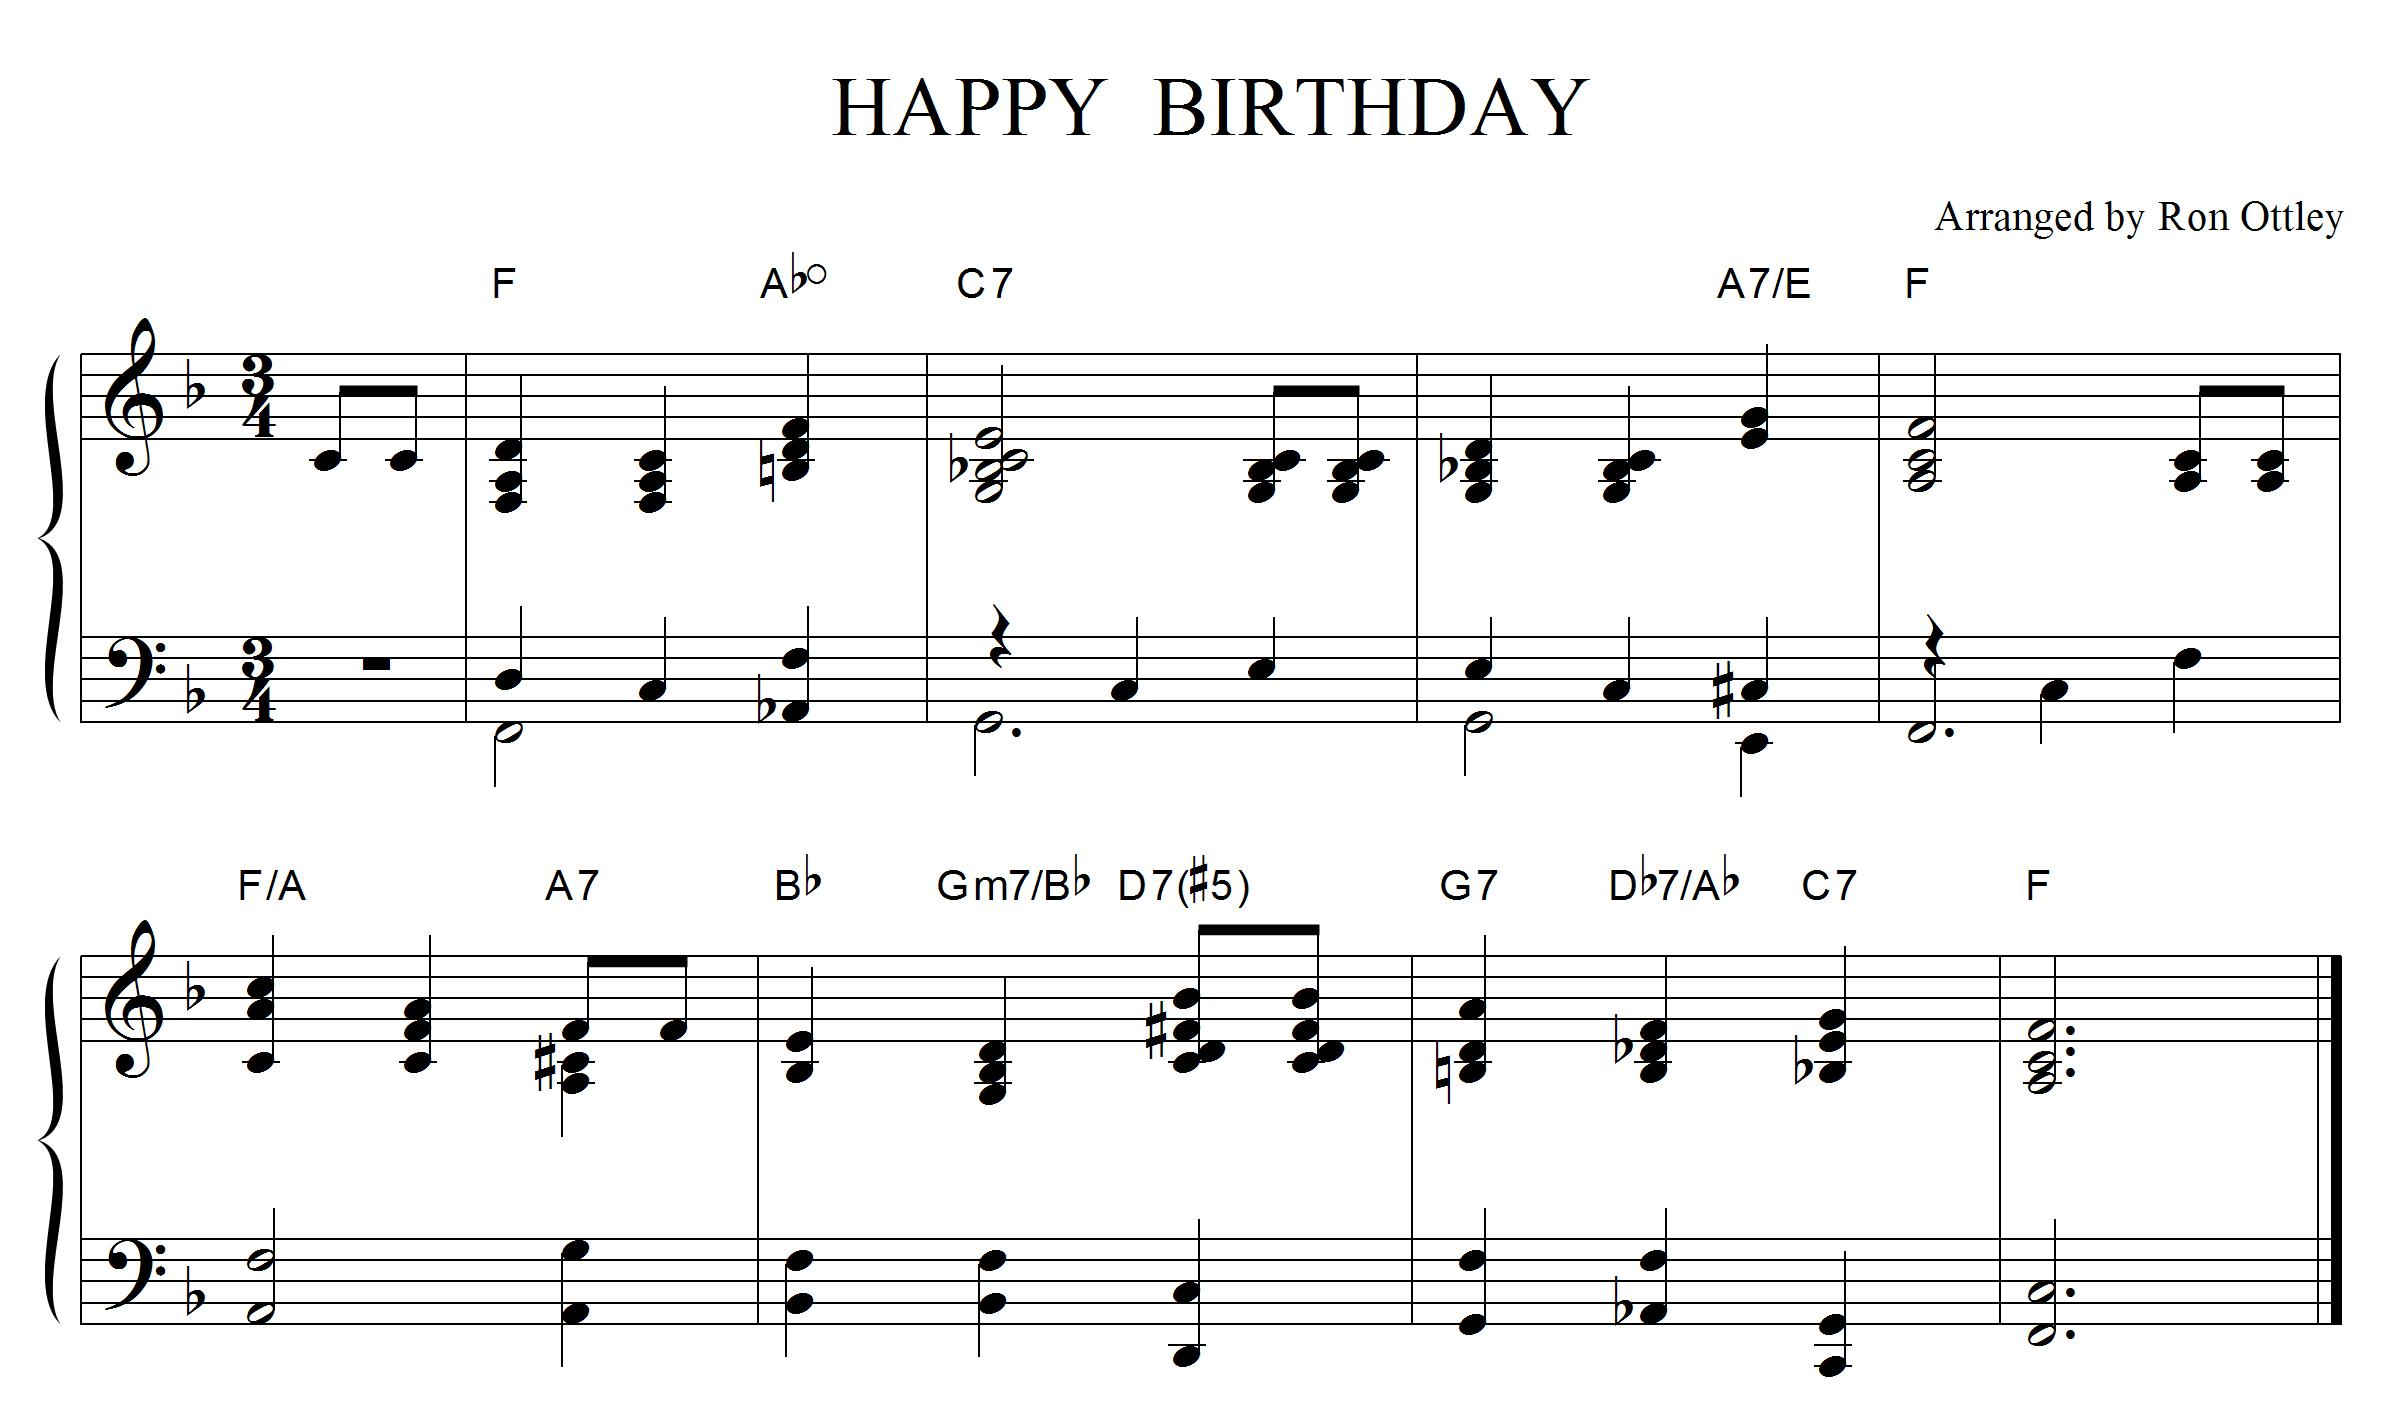 happy birthday notations in piano ; happy-birthday-music-notes-for-piano-a1e1aede4f798061b65953ec433a32f6